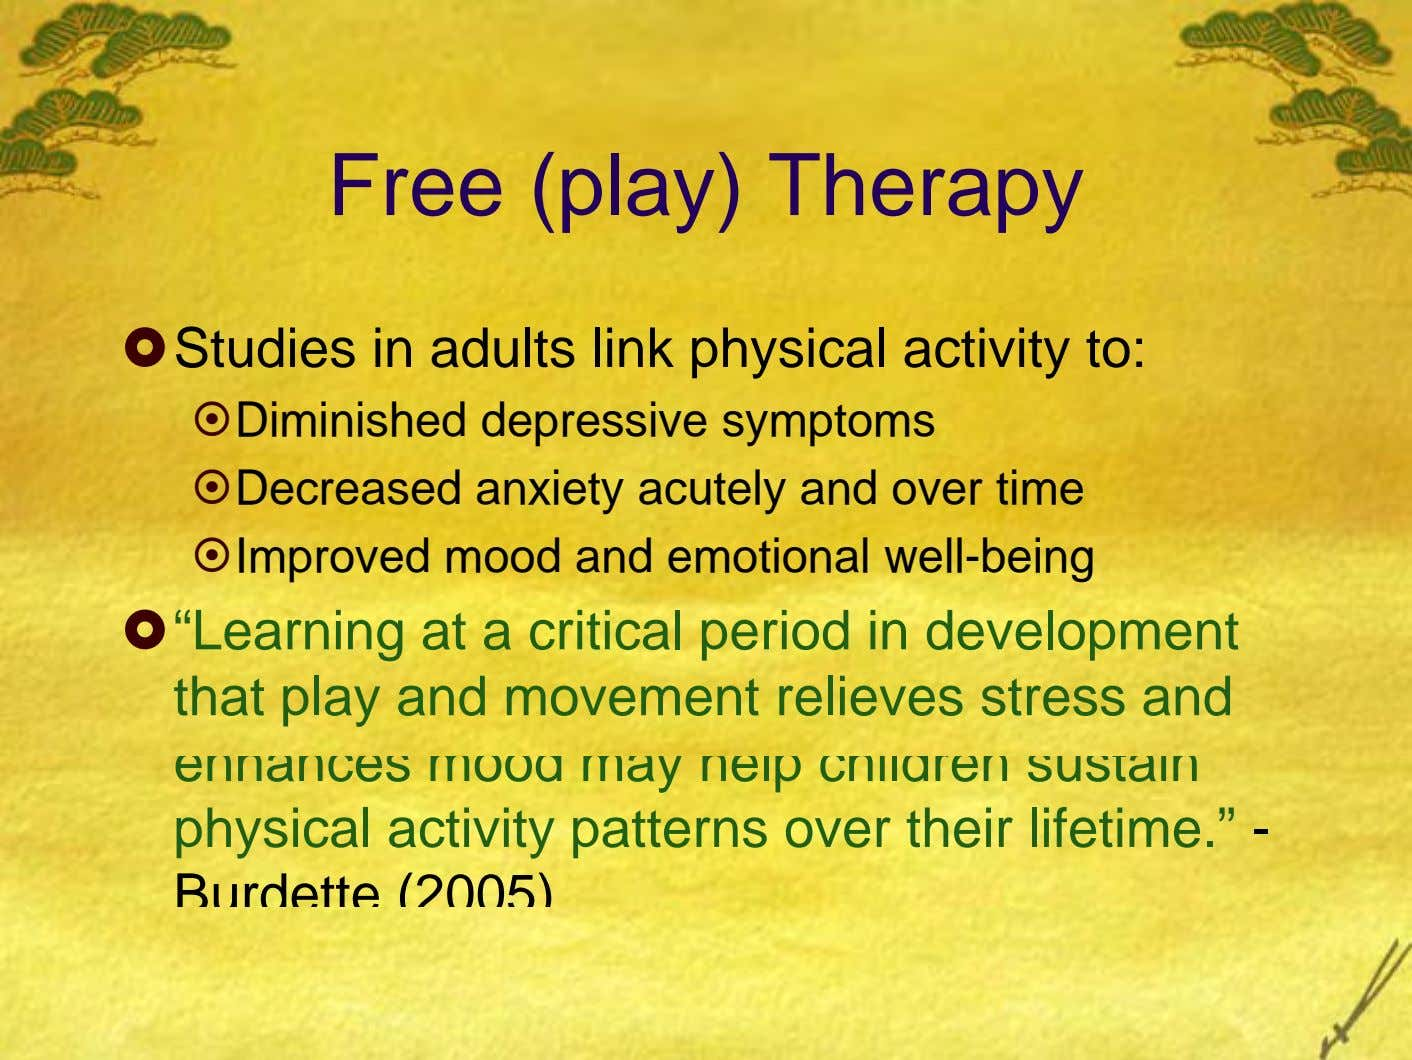 Free (play) Therapy Studies in adults link physical activity to: Diminished depressive symptoms Decreased anxiety acutely